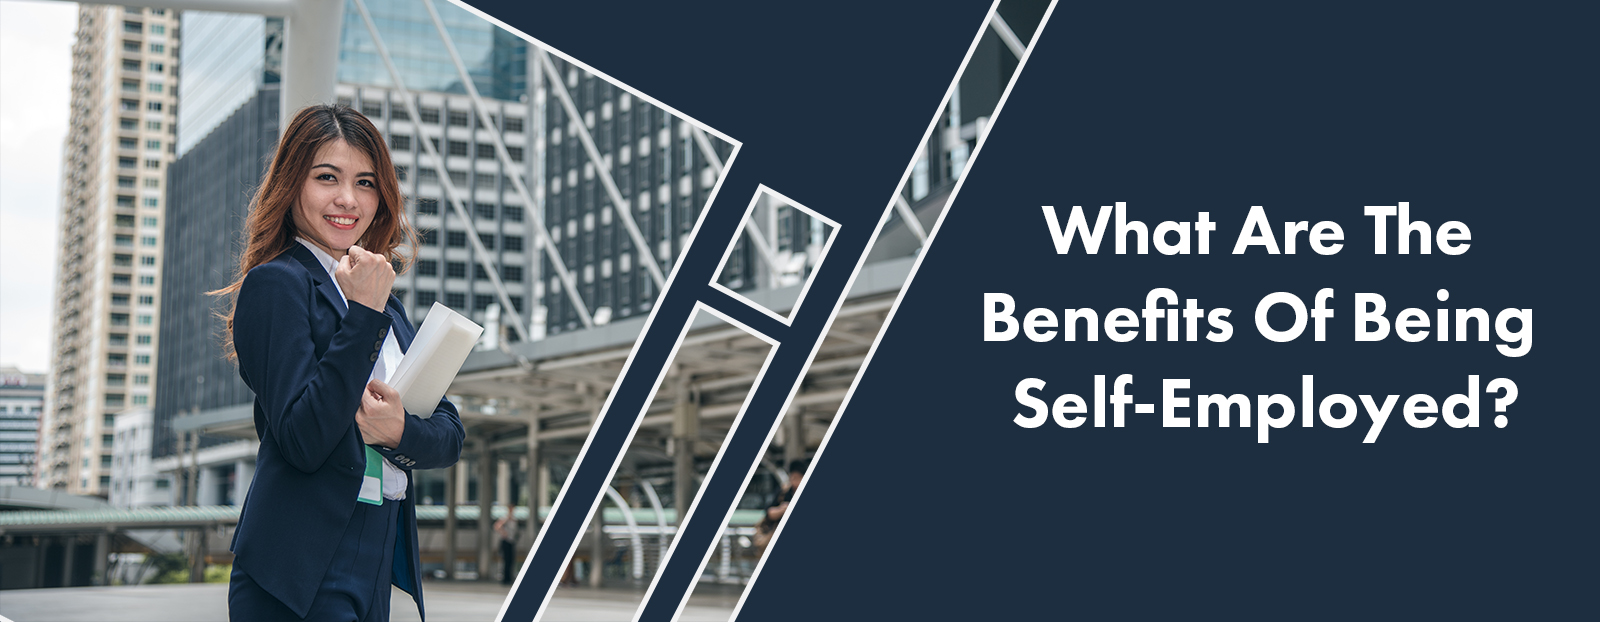 What Are The Benefits Of Being Self-Employed?